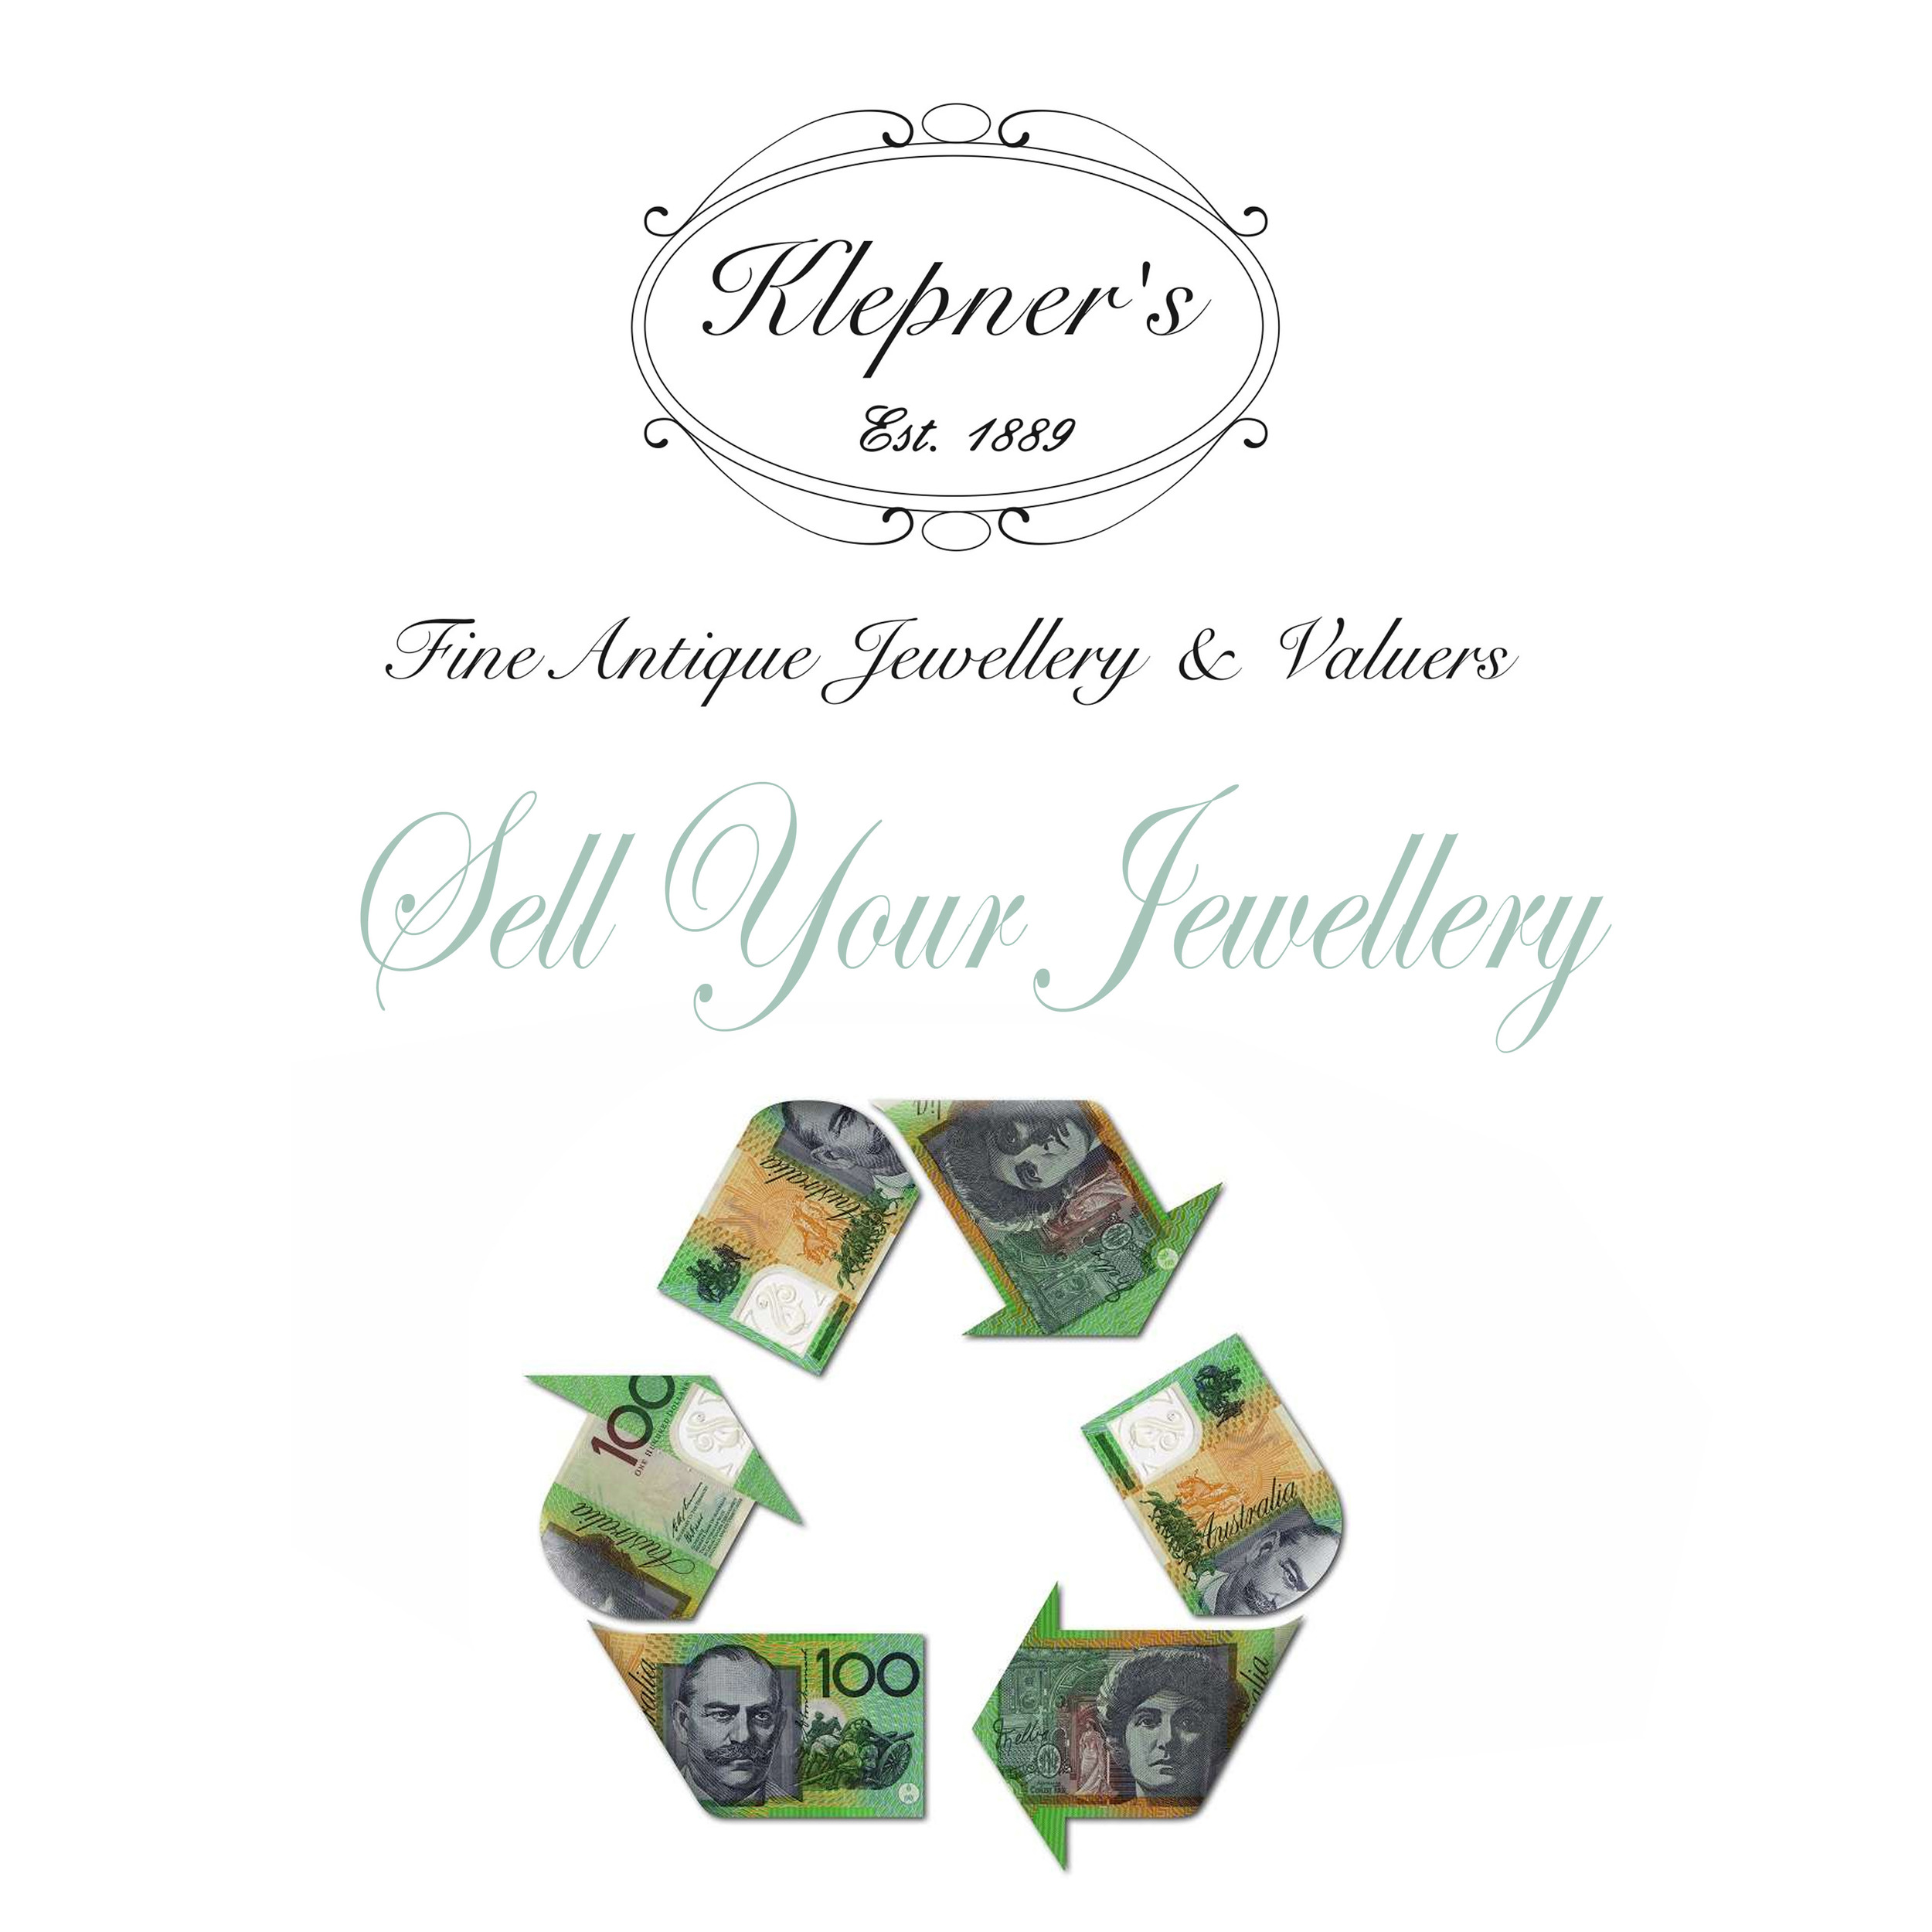 Click to find out more about our selling or consigning your old jewellery